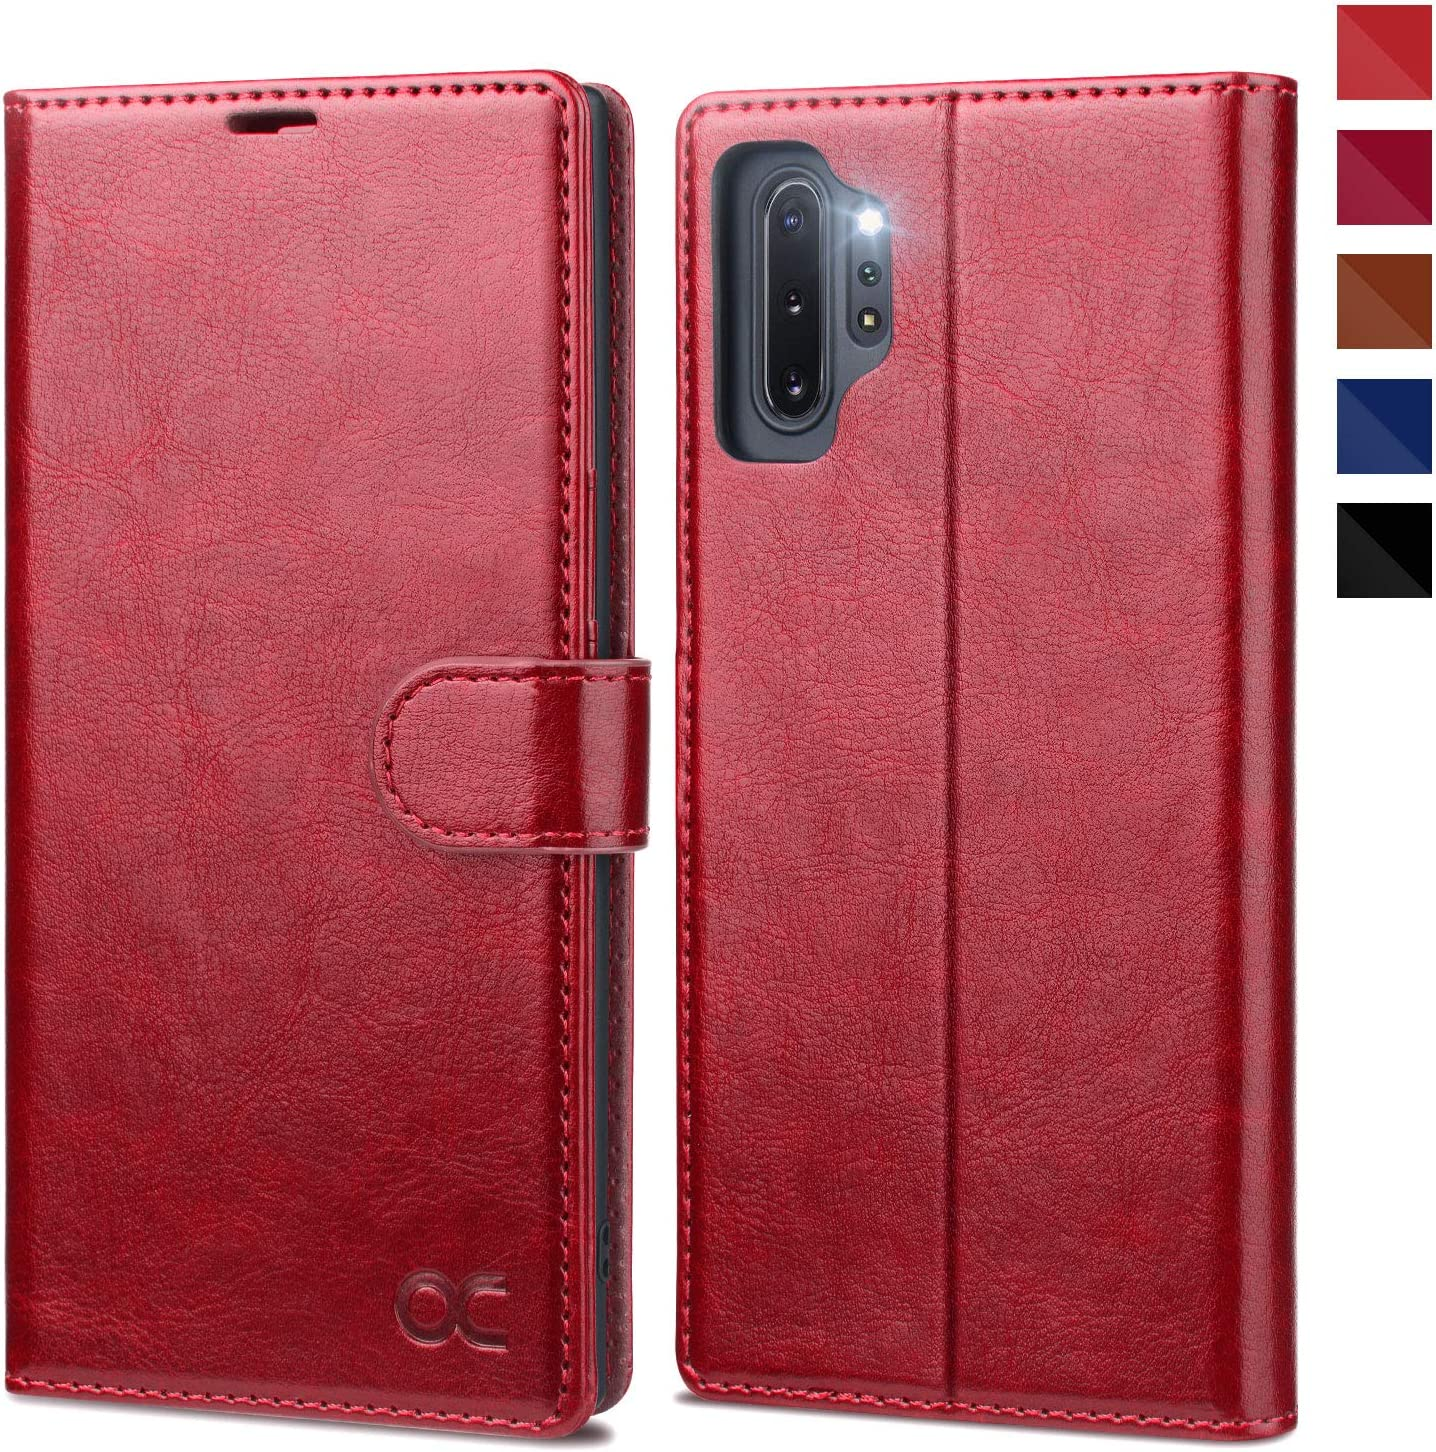 OCASE Galaxy Note 10 Plus Wallet Case, Note 10 Plus 5G Leather Flip Case with Card Holder Kickstand and Magnetic Closure, TPU Shockproof Phone Cover for Samsung Galaxy Note10 Plus 6.8 Inch (Red)